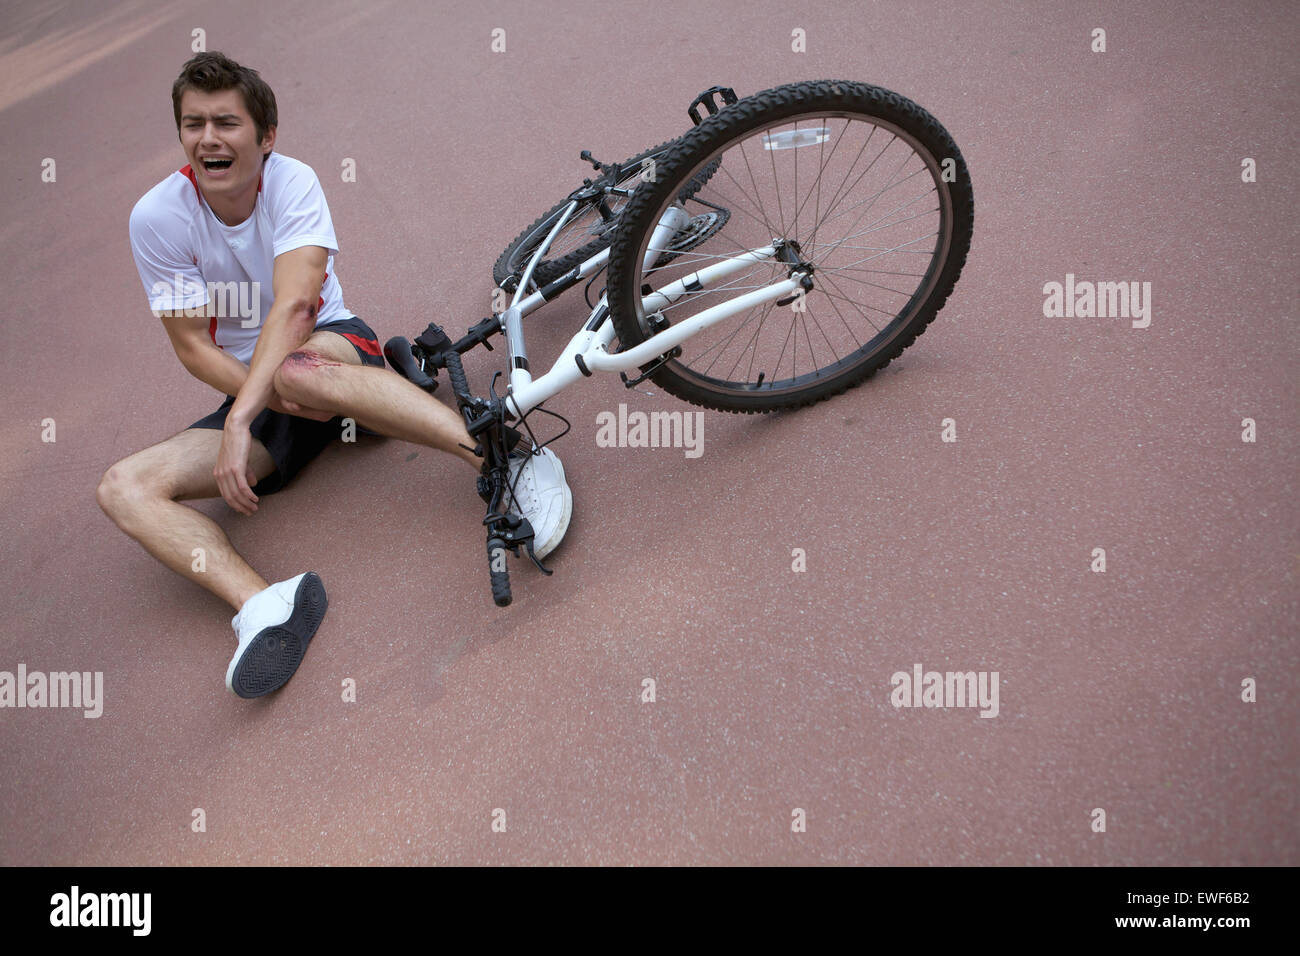 Young man injured during riding a bike - Stock Image